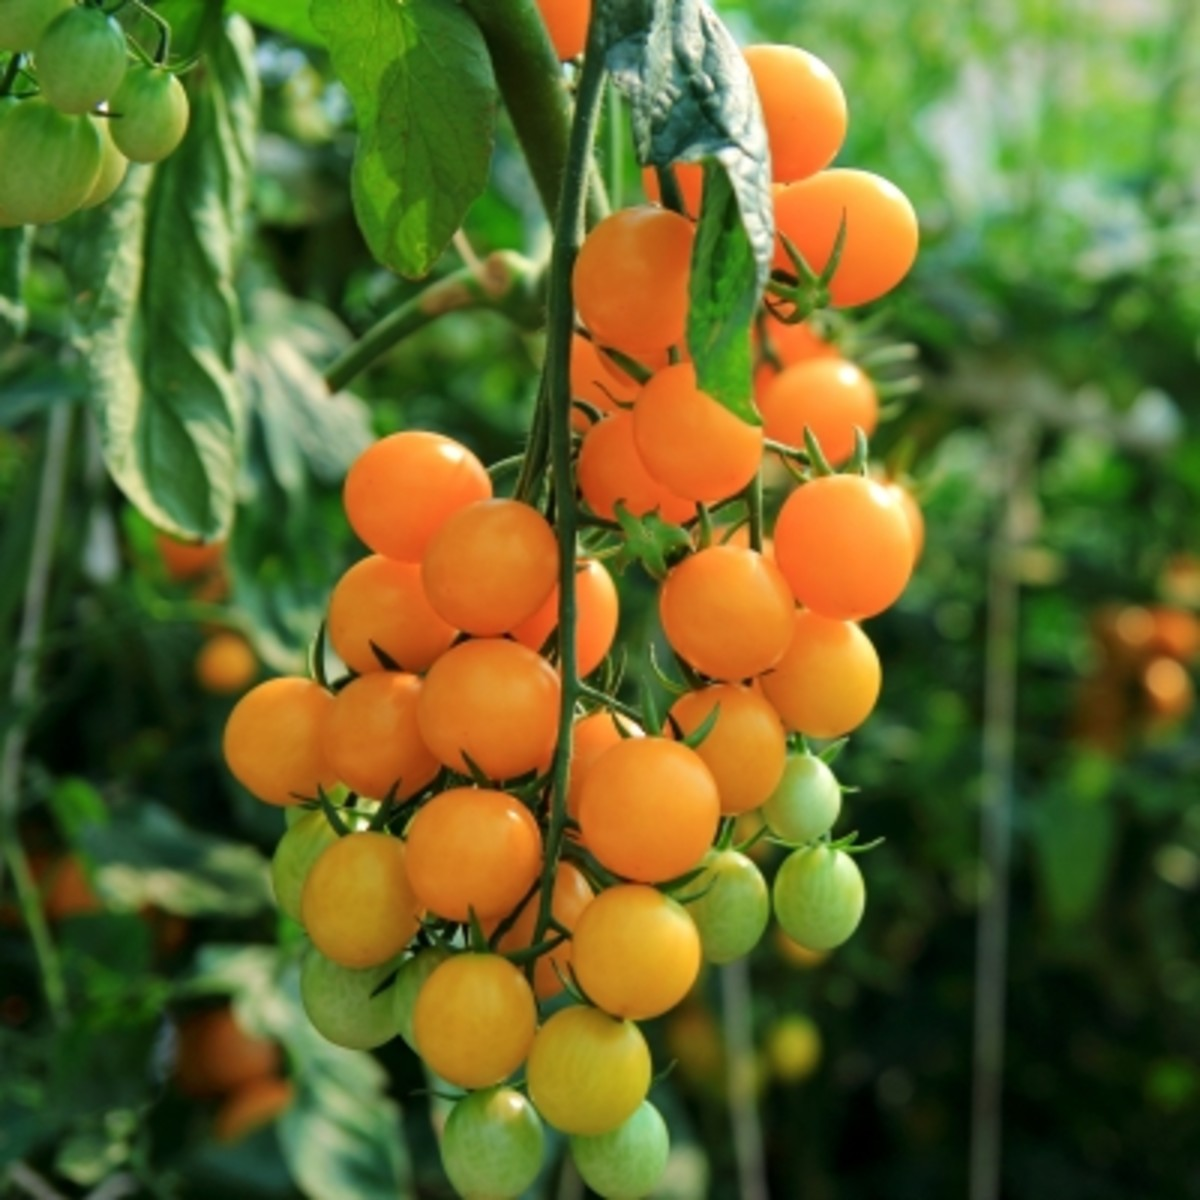 Organic cherry tomatoes are expensive to buy at the store. By growing your own, you can save money.